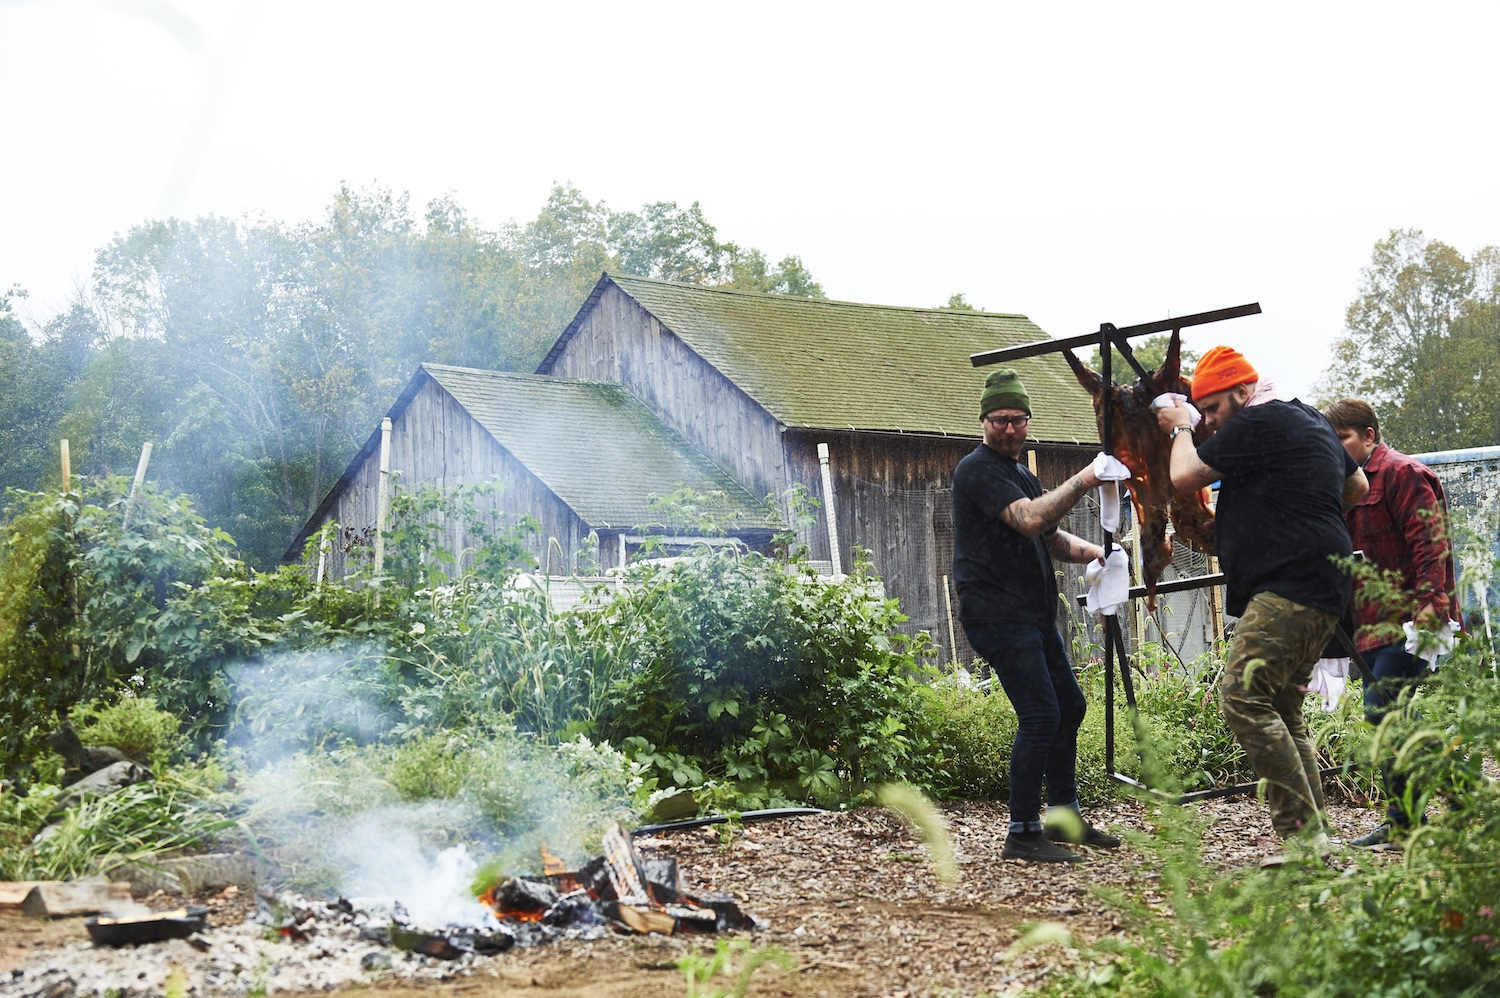 Christian Petroni of Fortina cooks an asado lamb over an open flame in Yonkers.